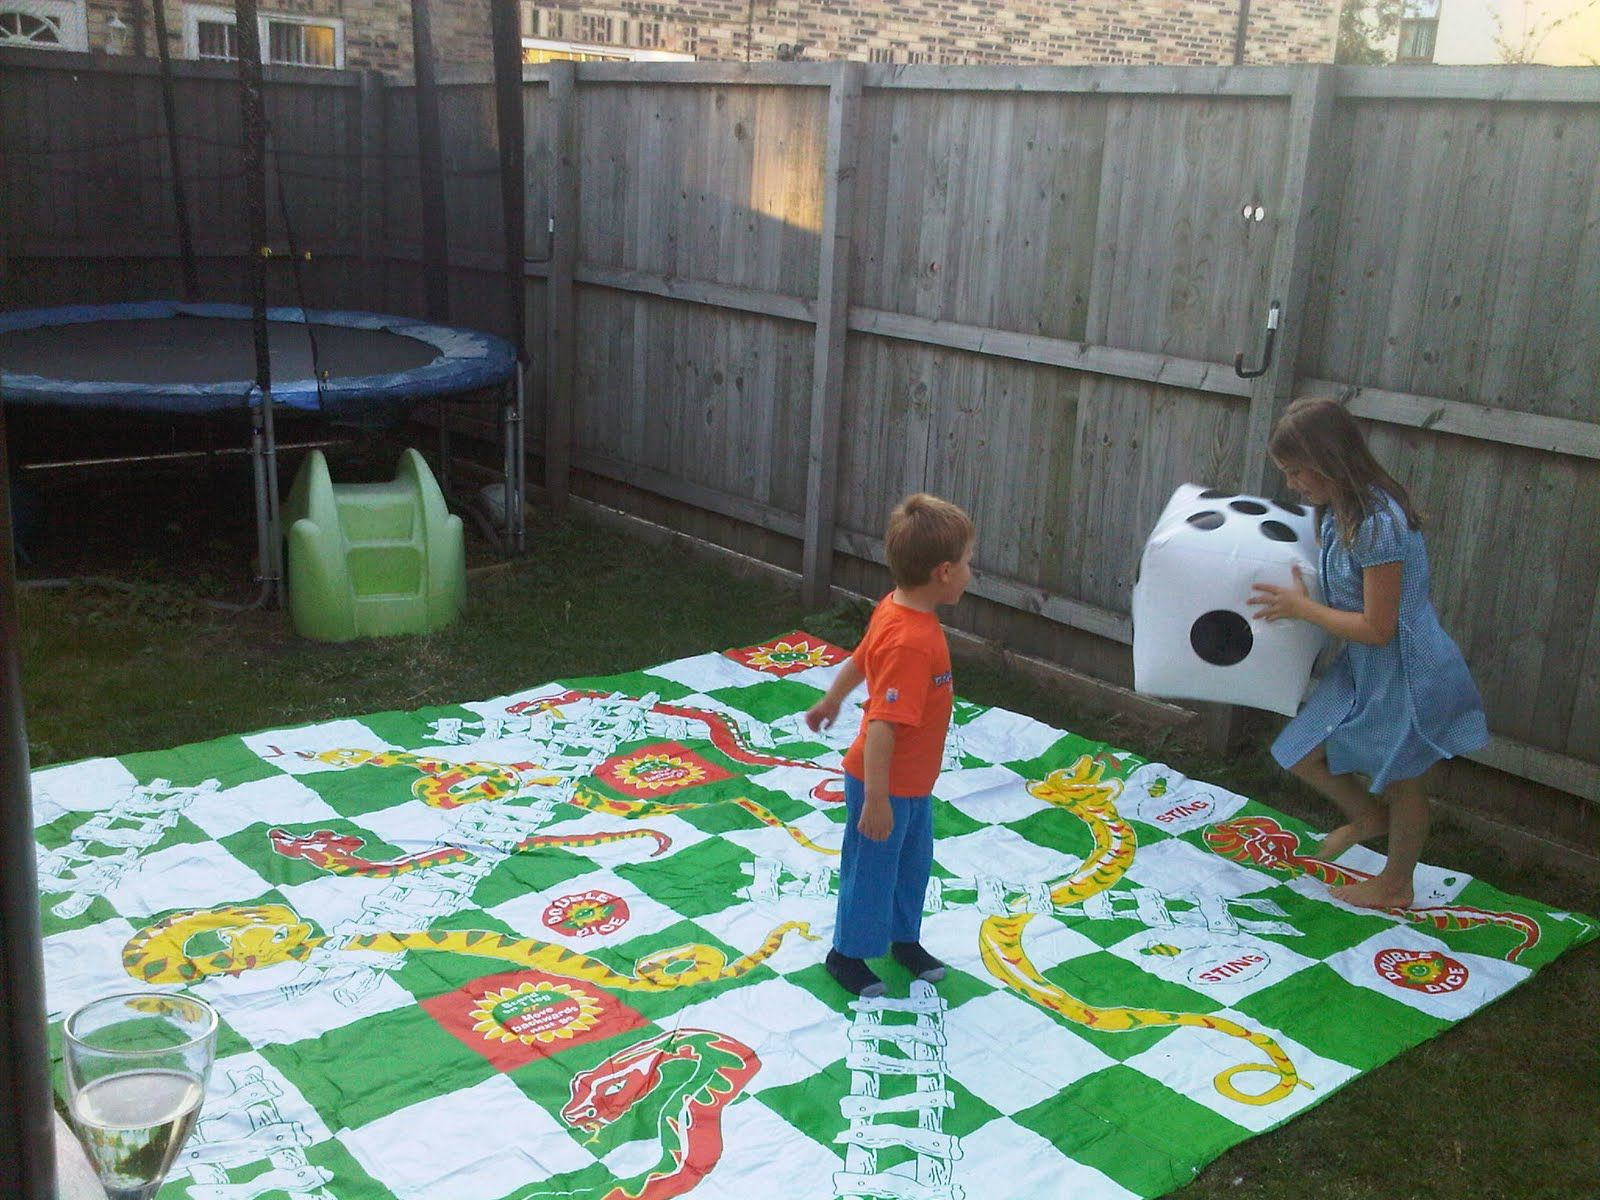 Pictures images snakes and ladders board game template wallpaper - Lifesize Snake And Ladders